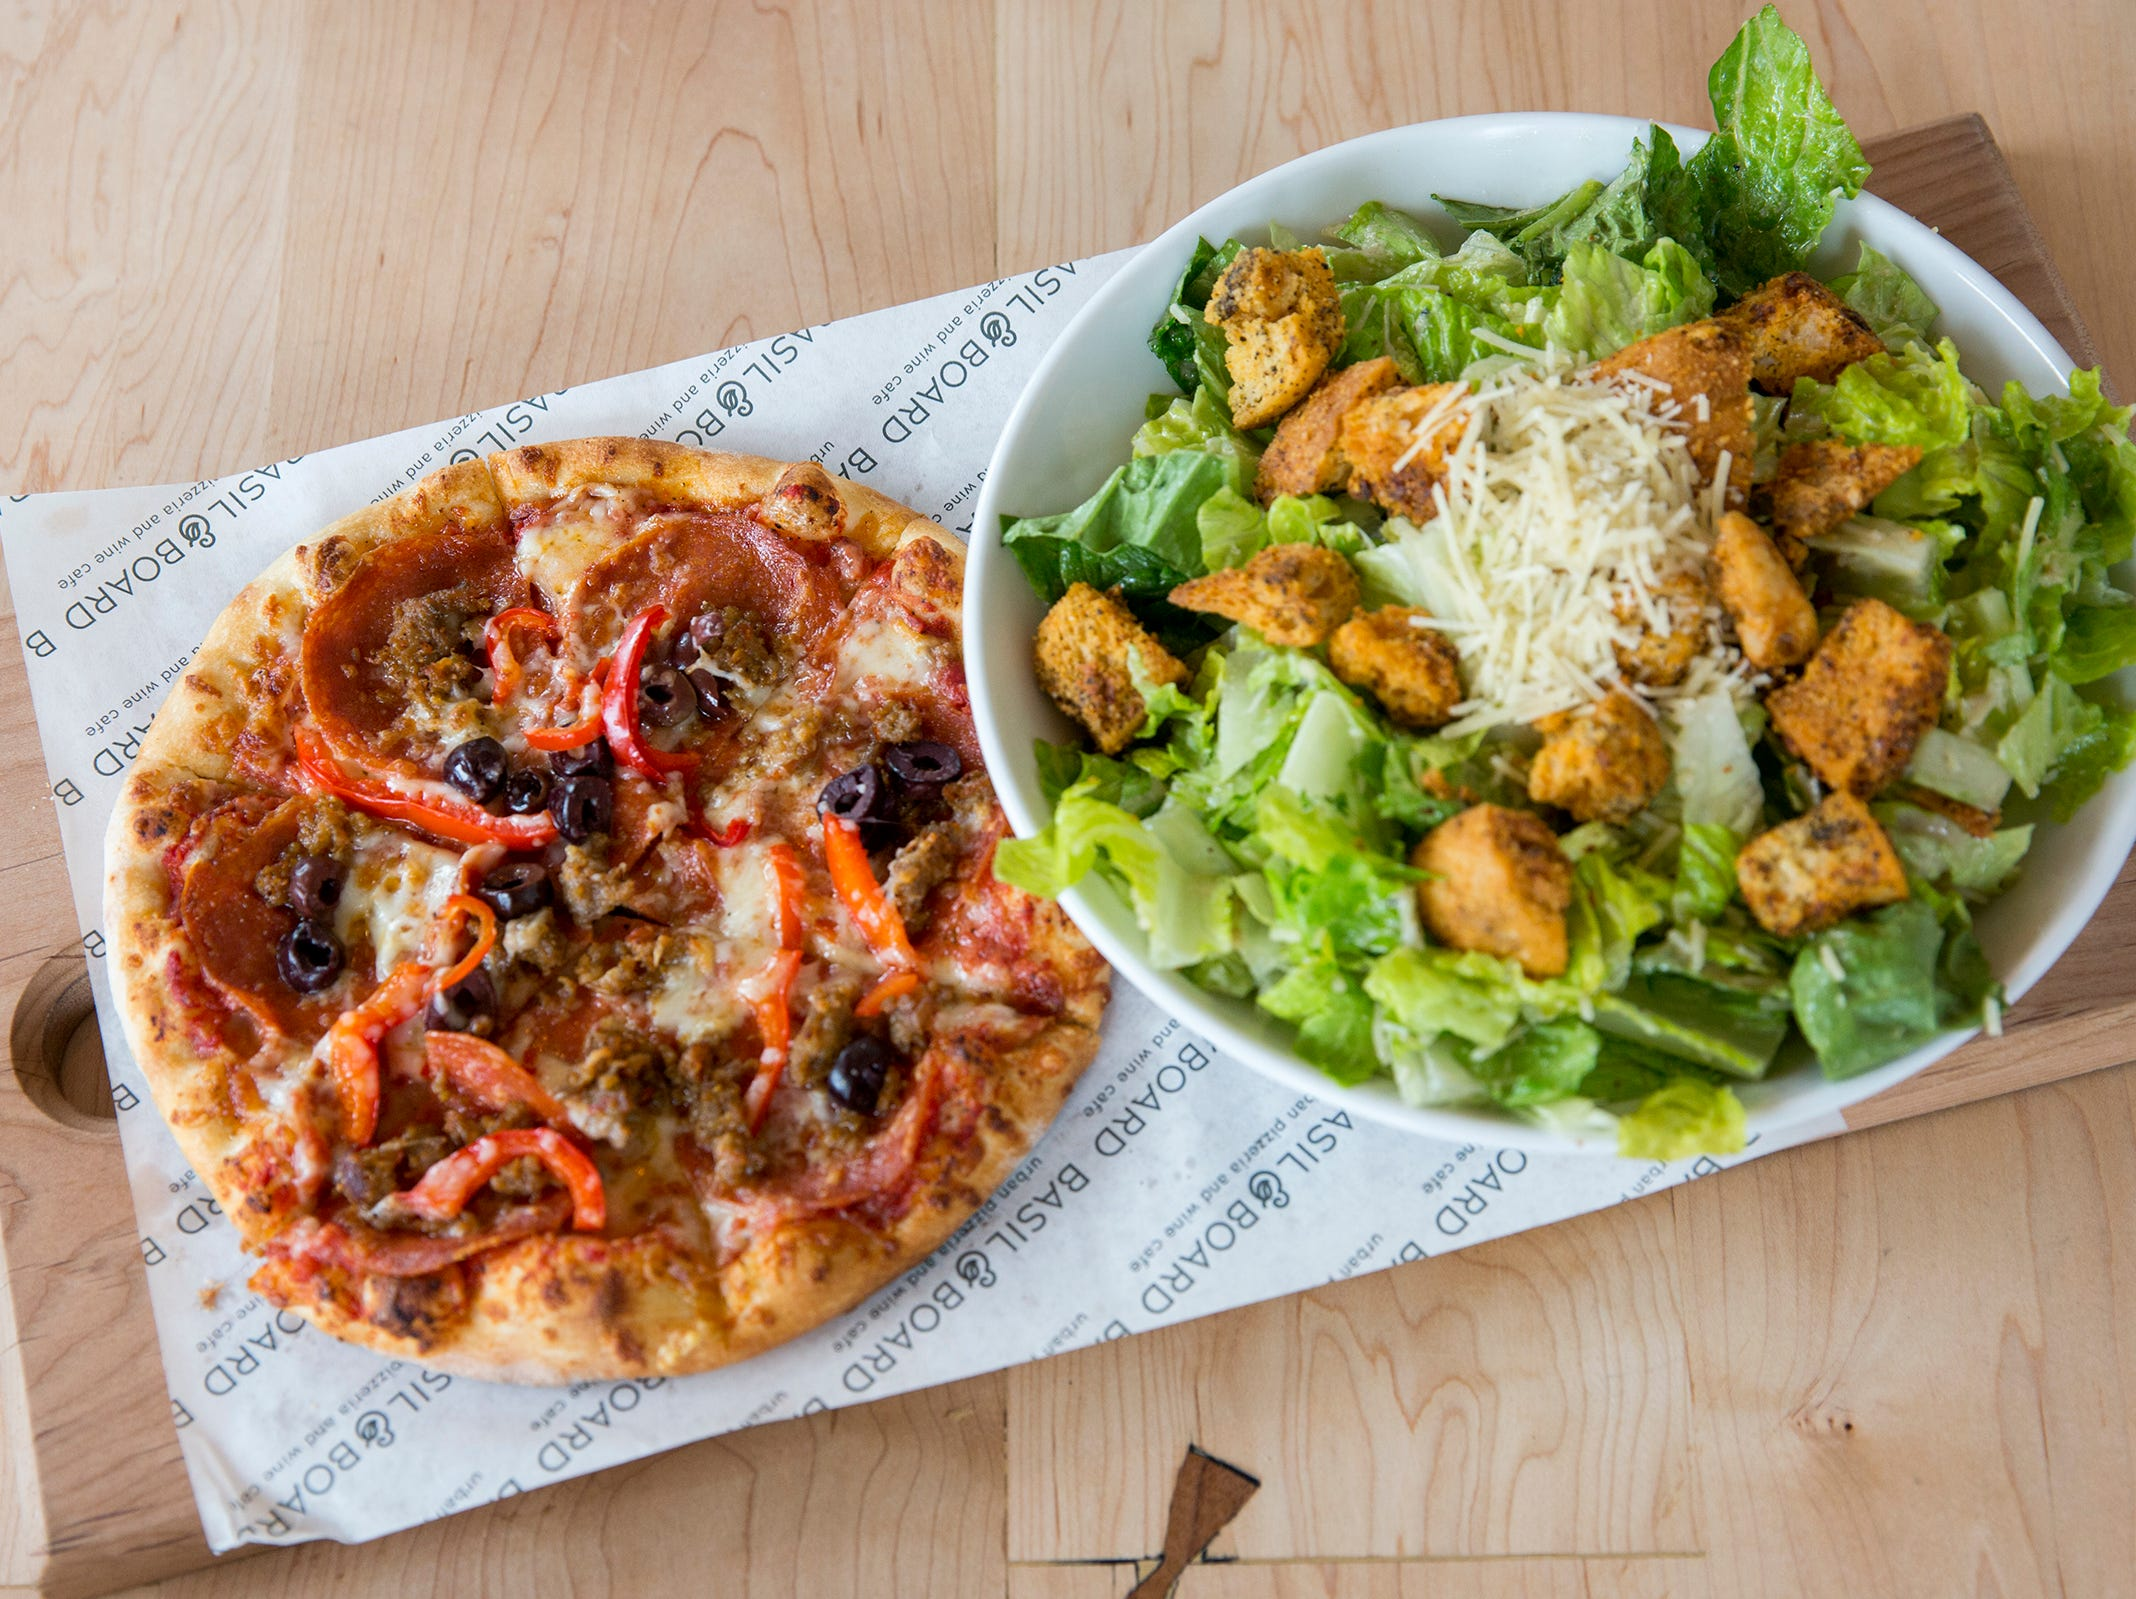 An 8 inch Isle of the Gods pizza from the lunch menu is paired with a salad in Salem on Tuesday, Feb. 26, 2019.